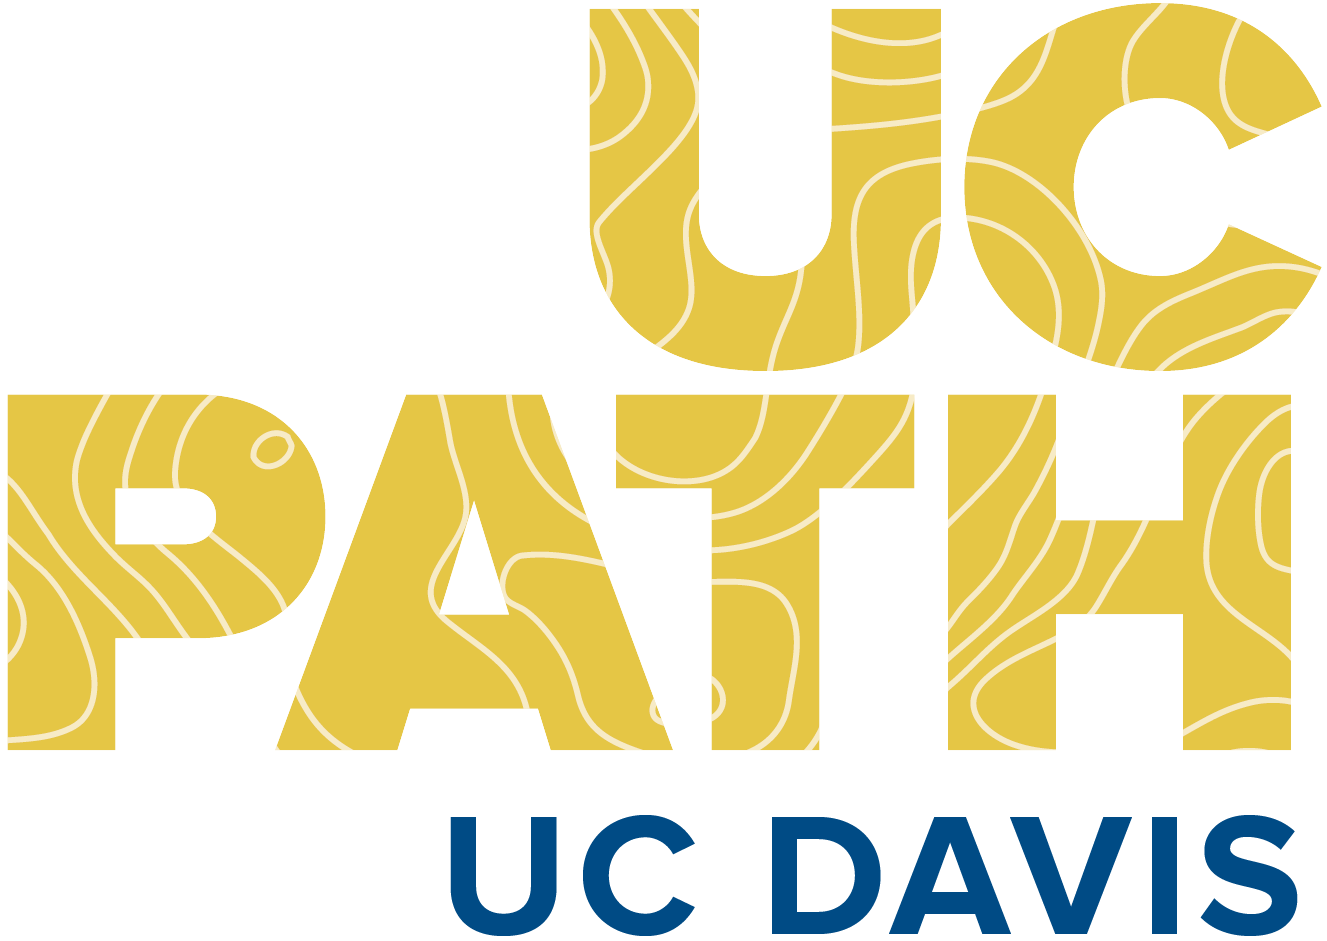 UCPath for UC Davis employees